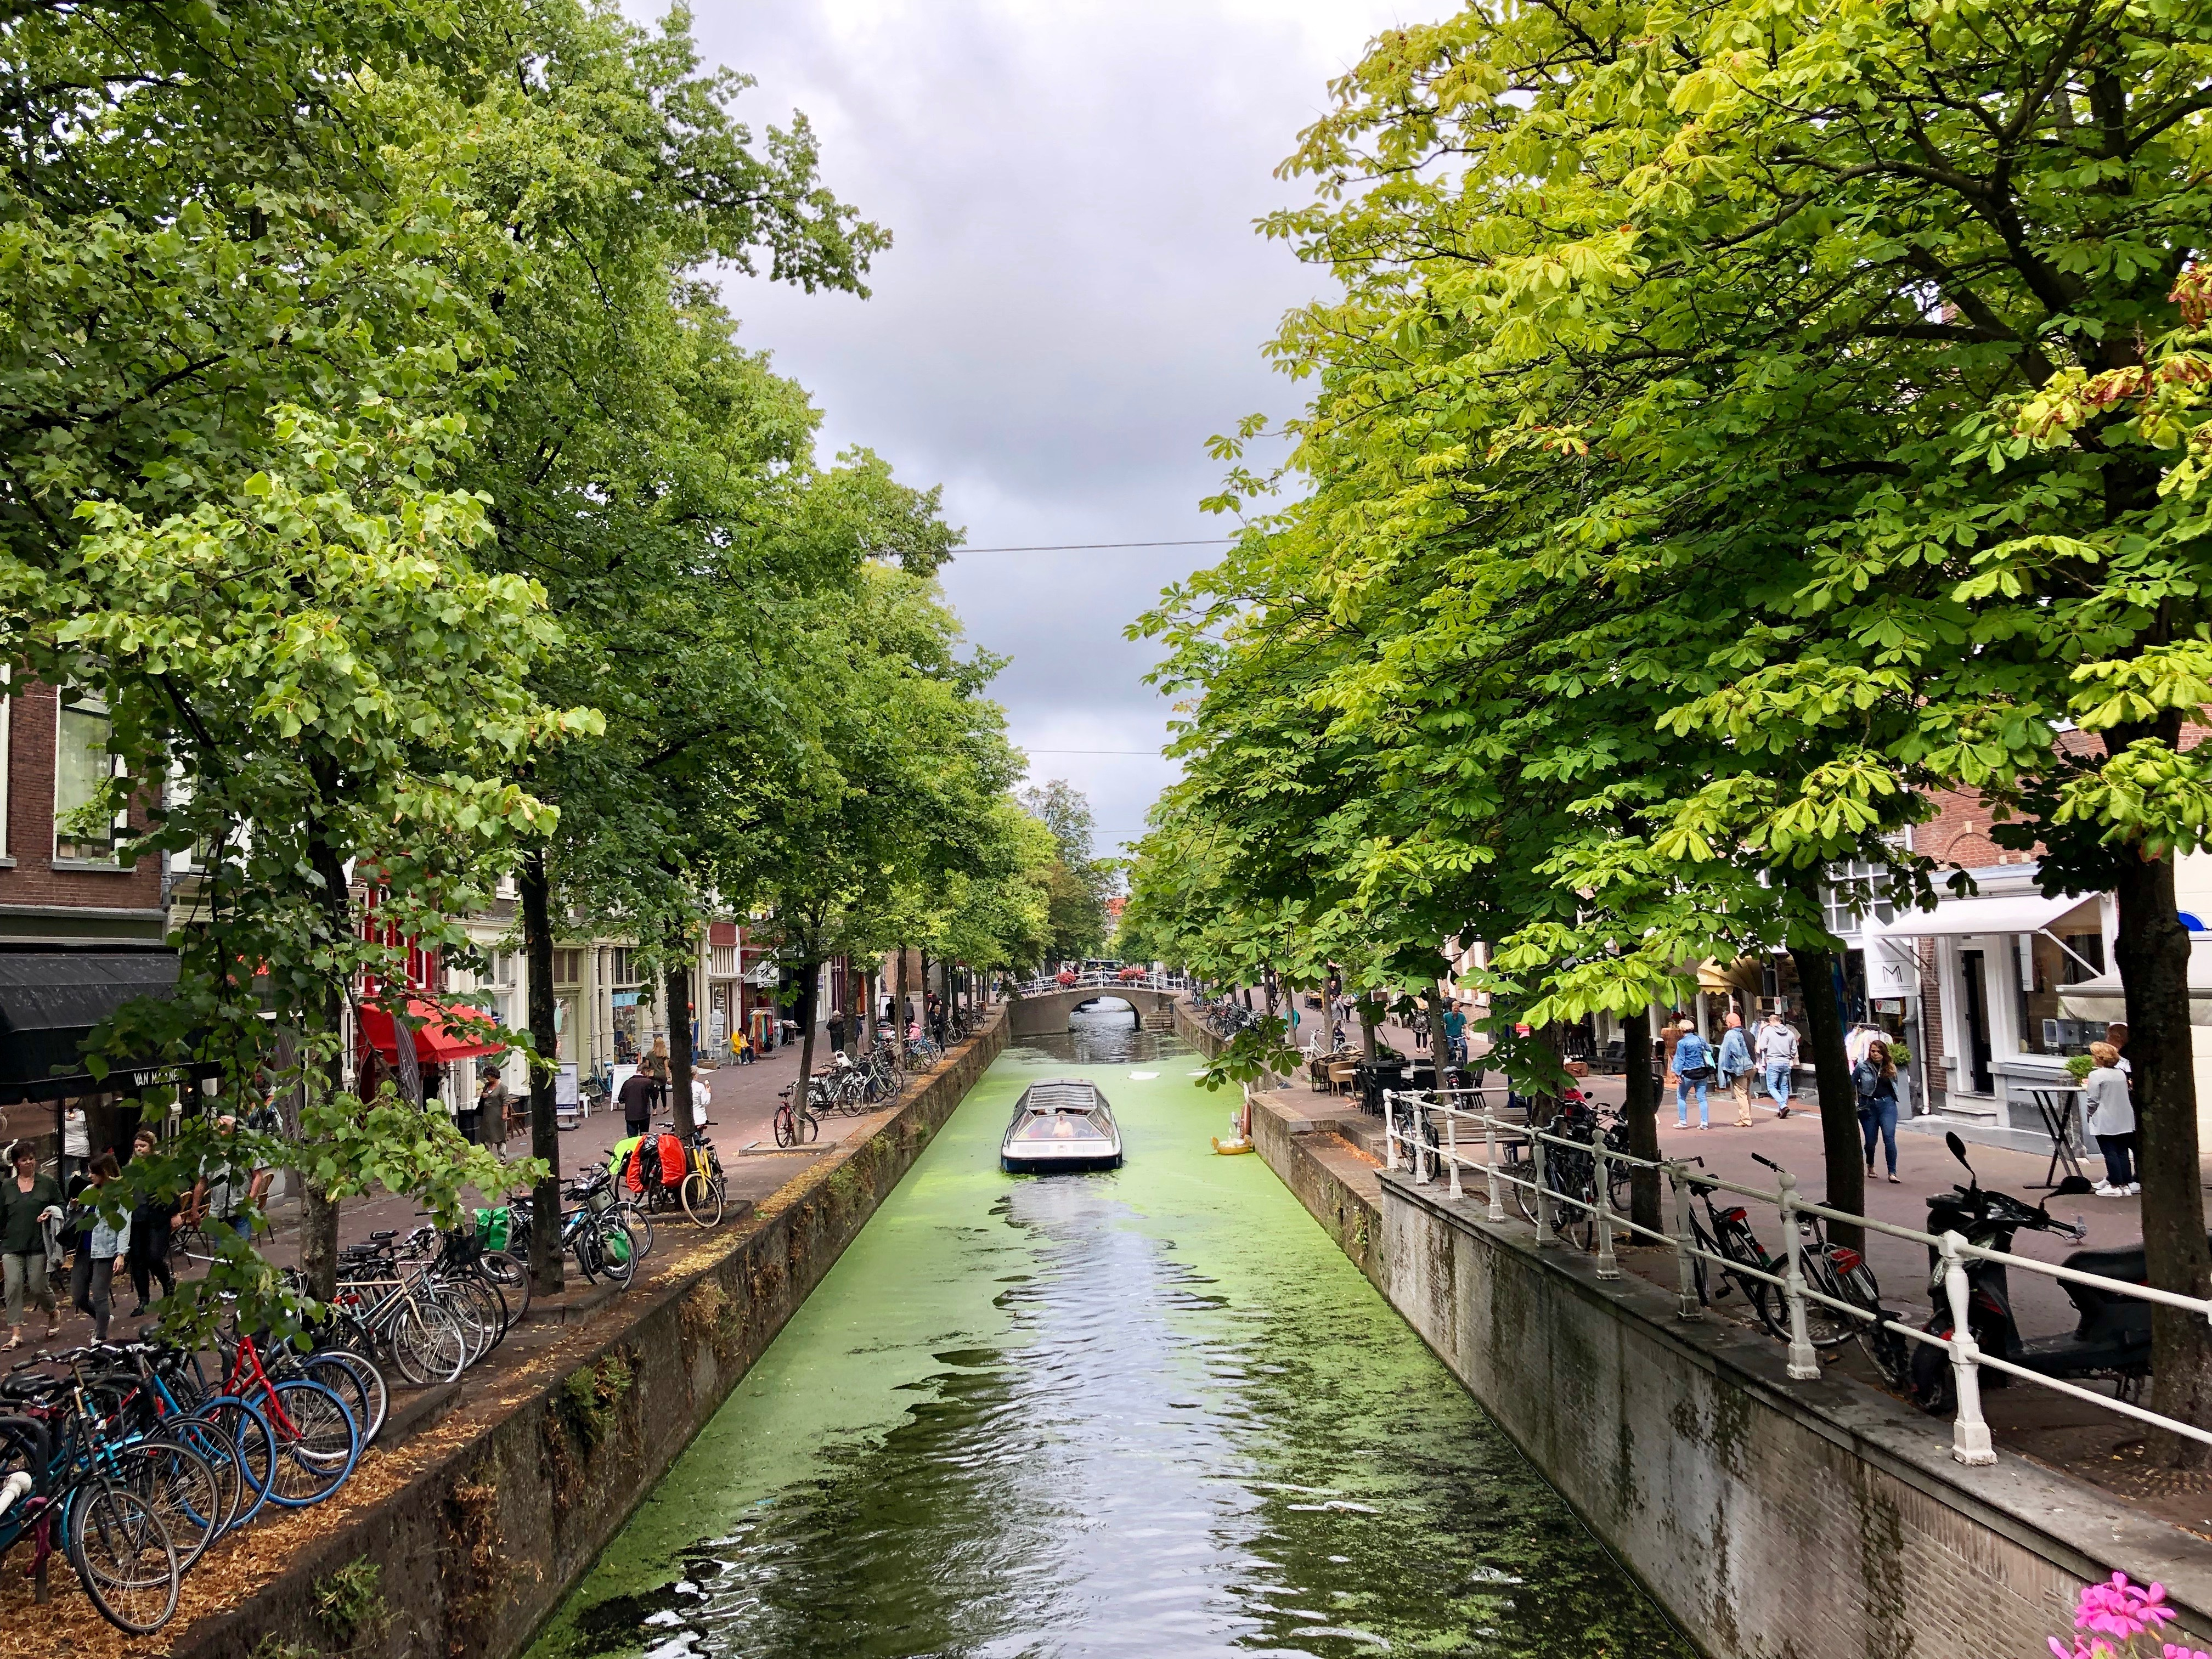 Free download high resolution image - free image free photo free stock image public domain picture -hippolytusbuurt le long du zuidergracht